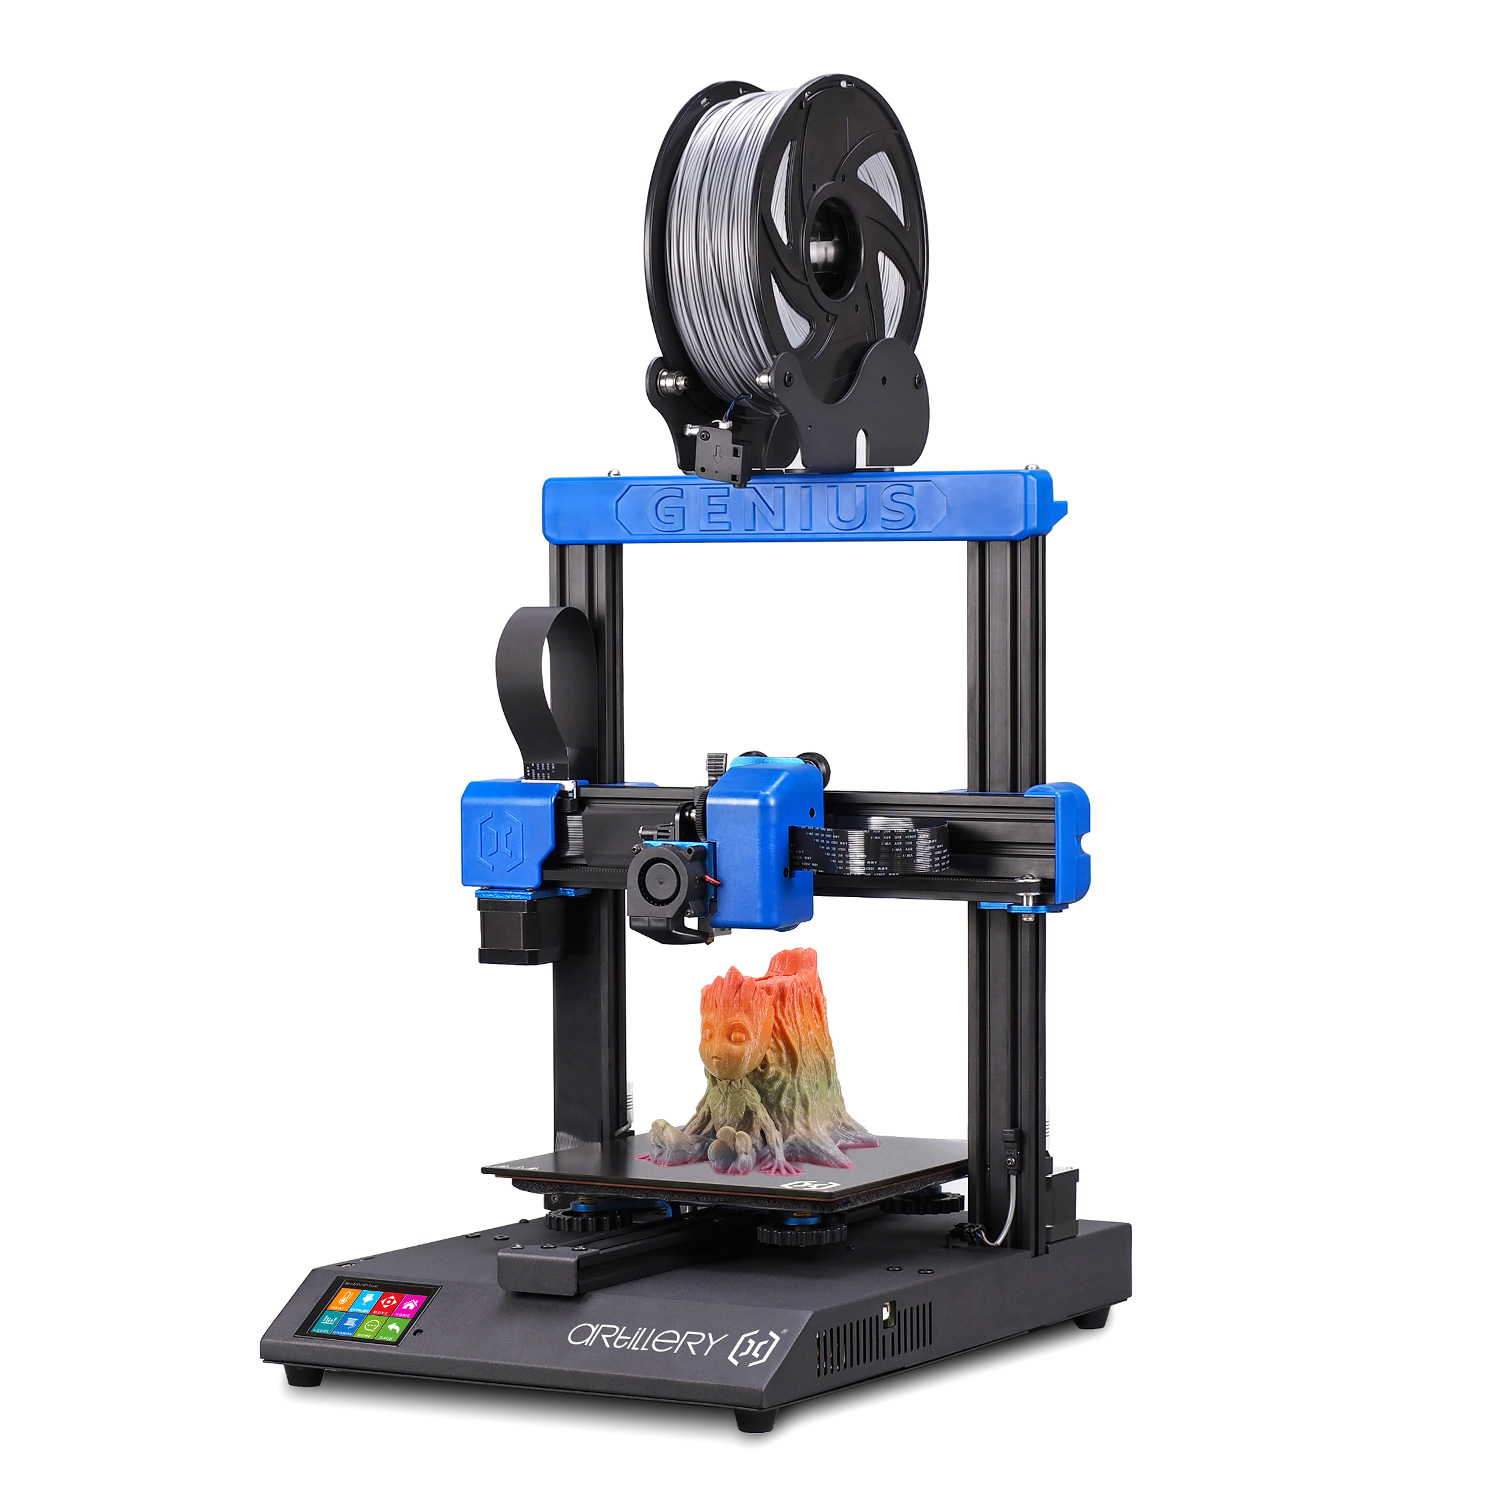 Artillery® Genius DIY 3D Printer Kit 220*220*250mm Print Size with Ultra-Quiet Stepper Motor TFT Touch Screen Support Filament Runout Detection&Power